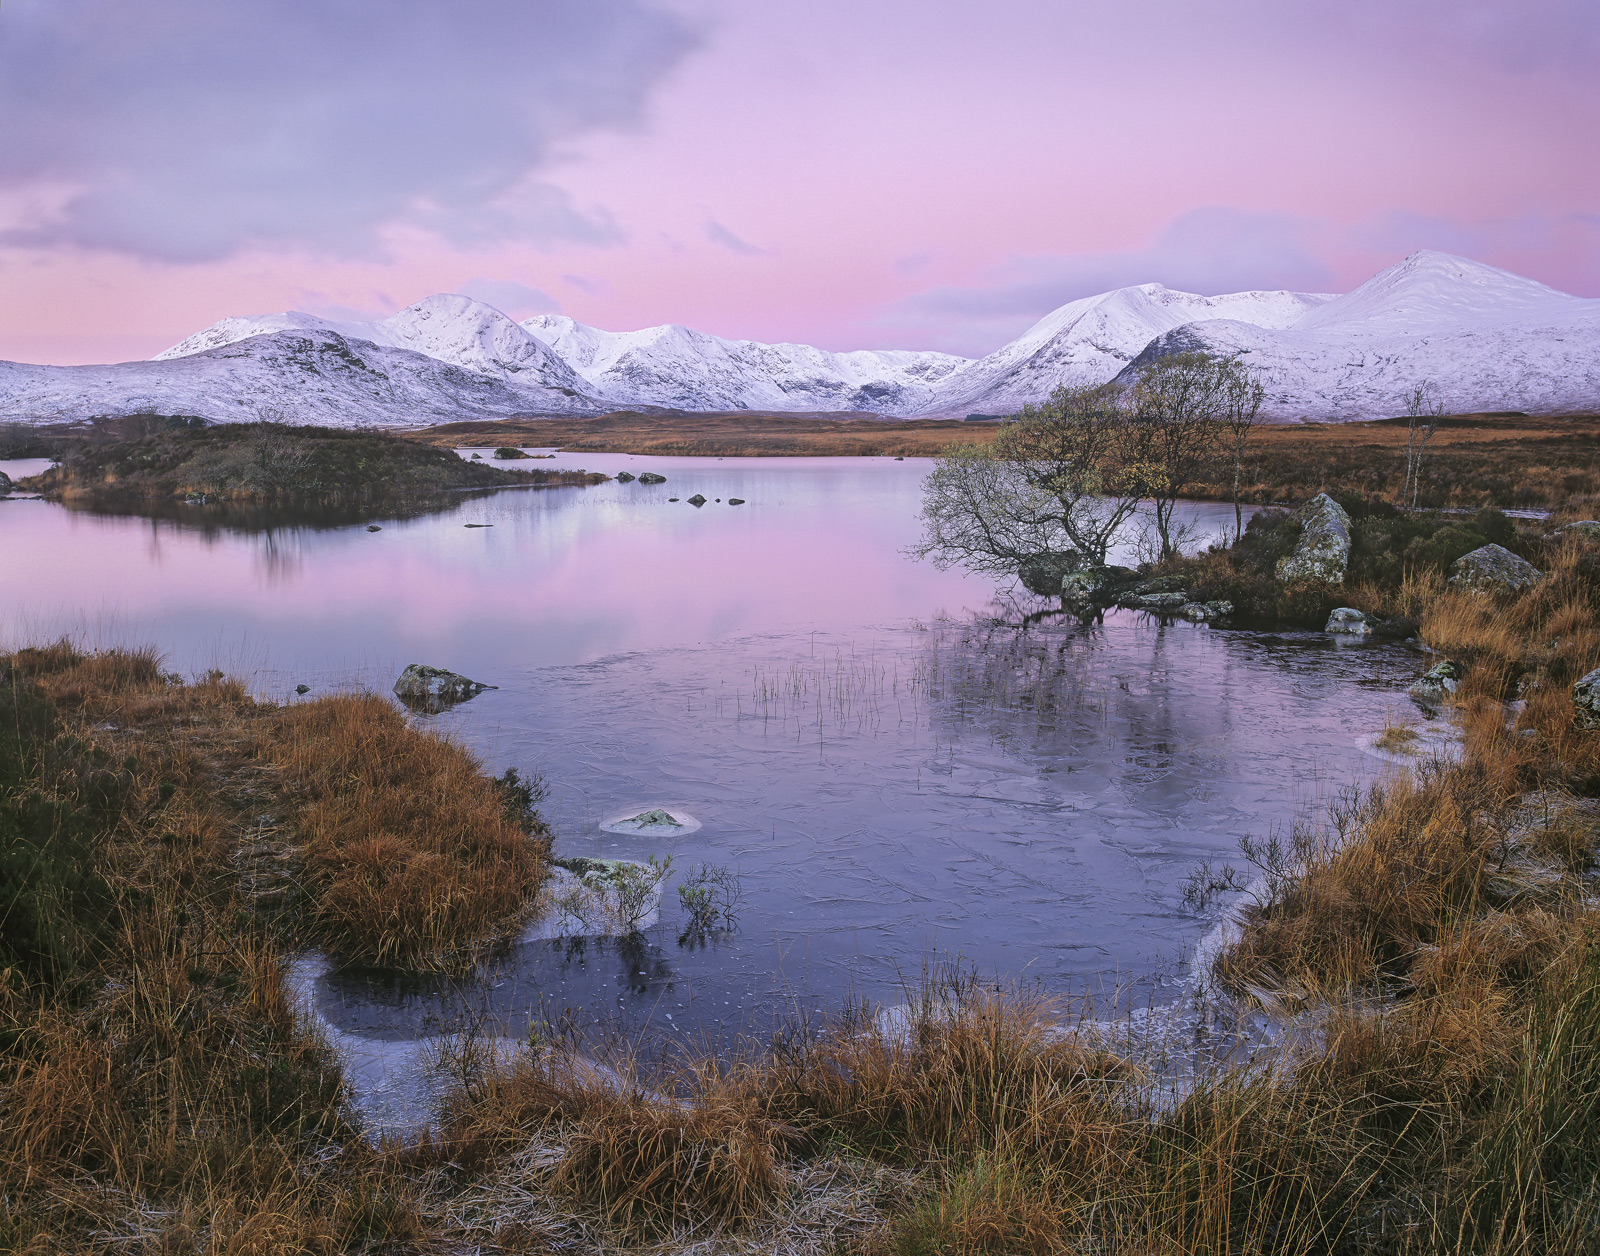 With the sun about to rise after a dreadful few days at Glencoe I was at last treated to a raspberry pink sky over the snow capped...